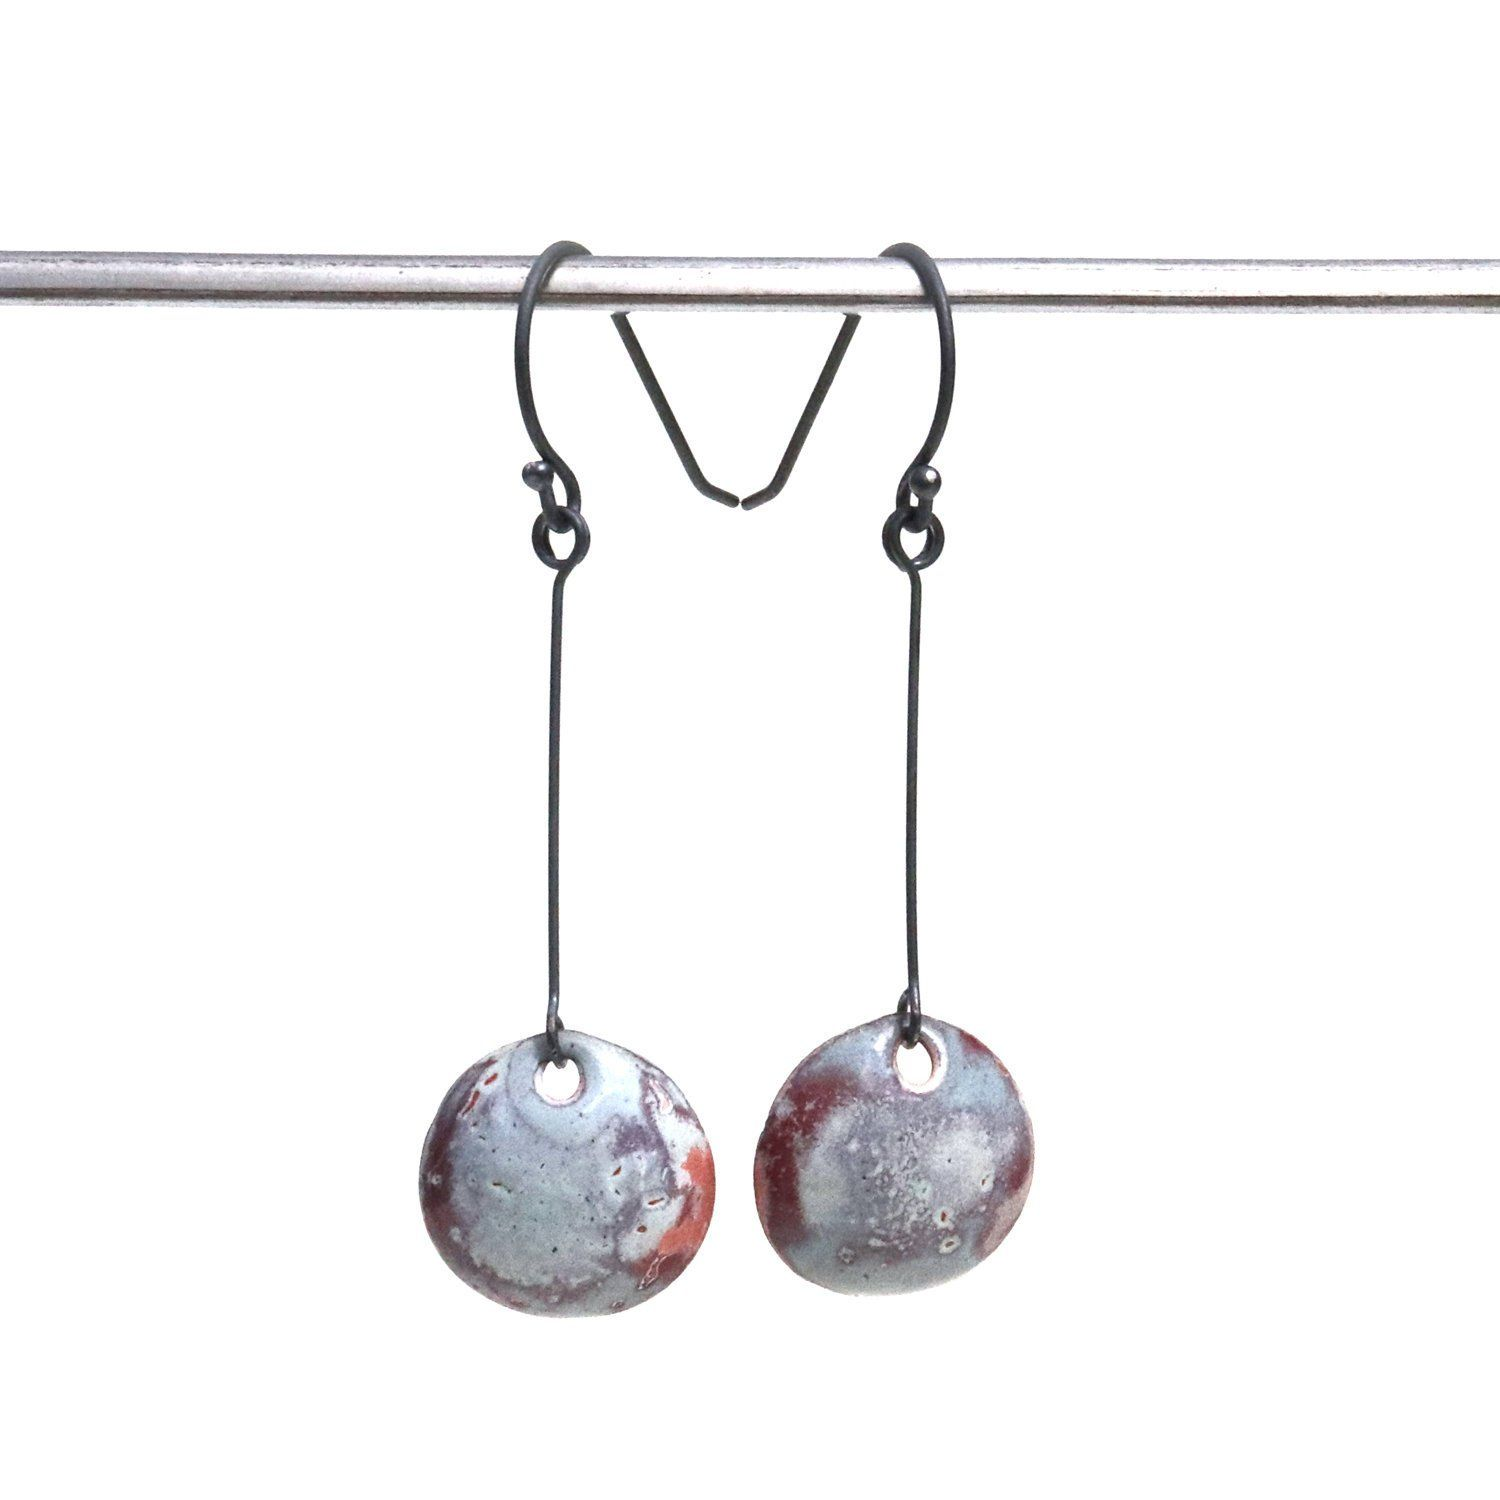 Torch Fired Enamel Earrings Copper Enamel Round Earrings